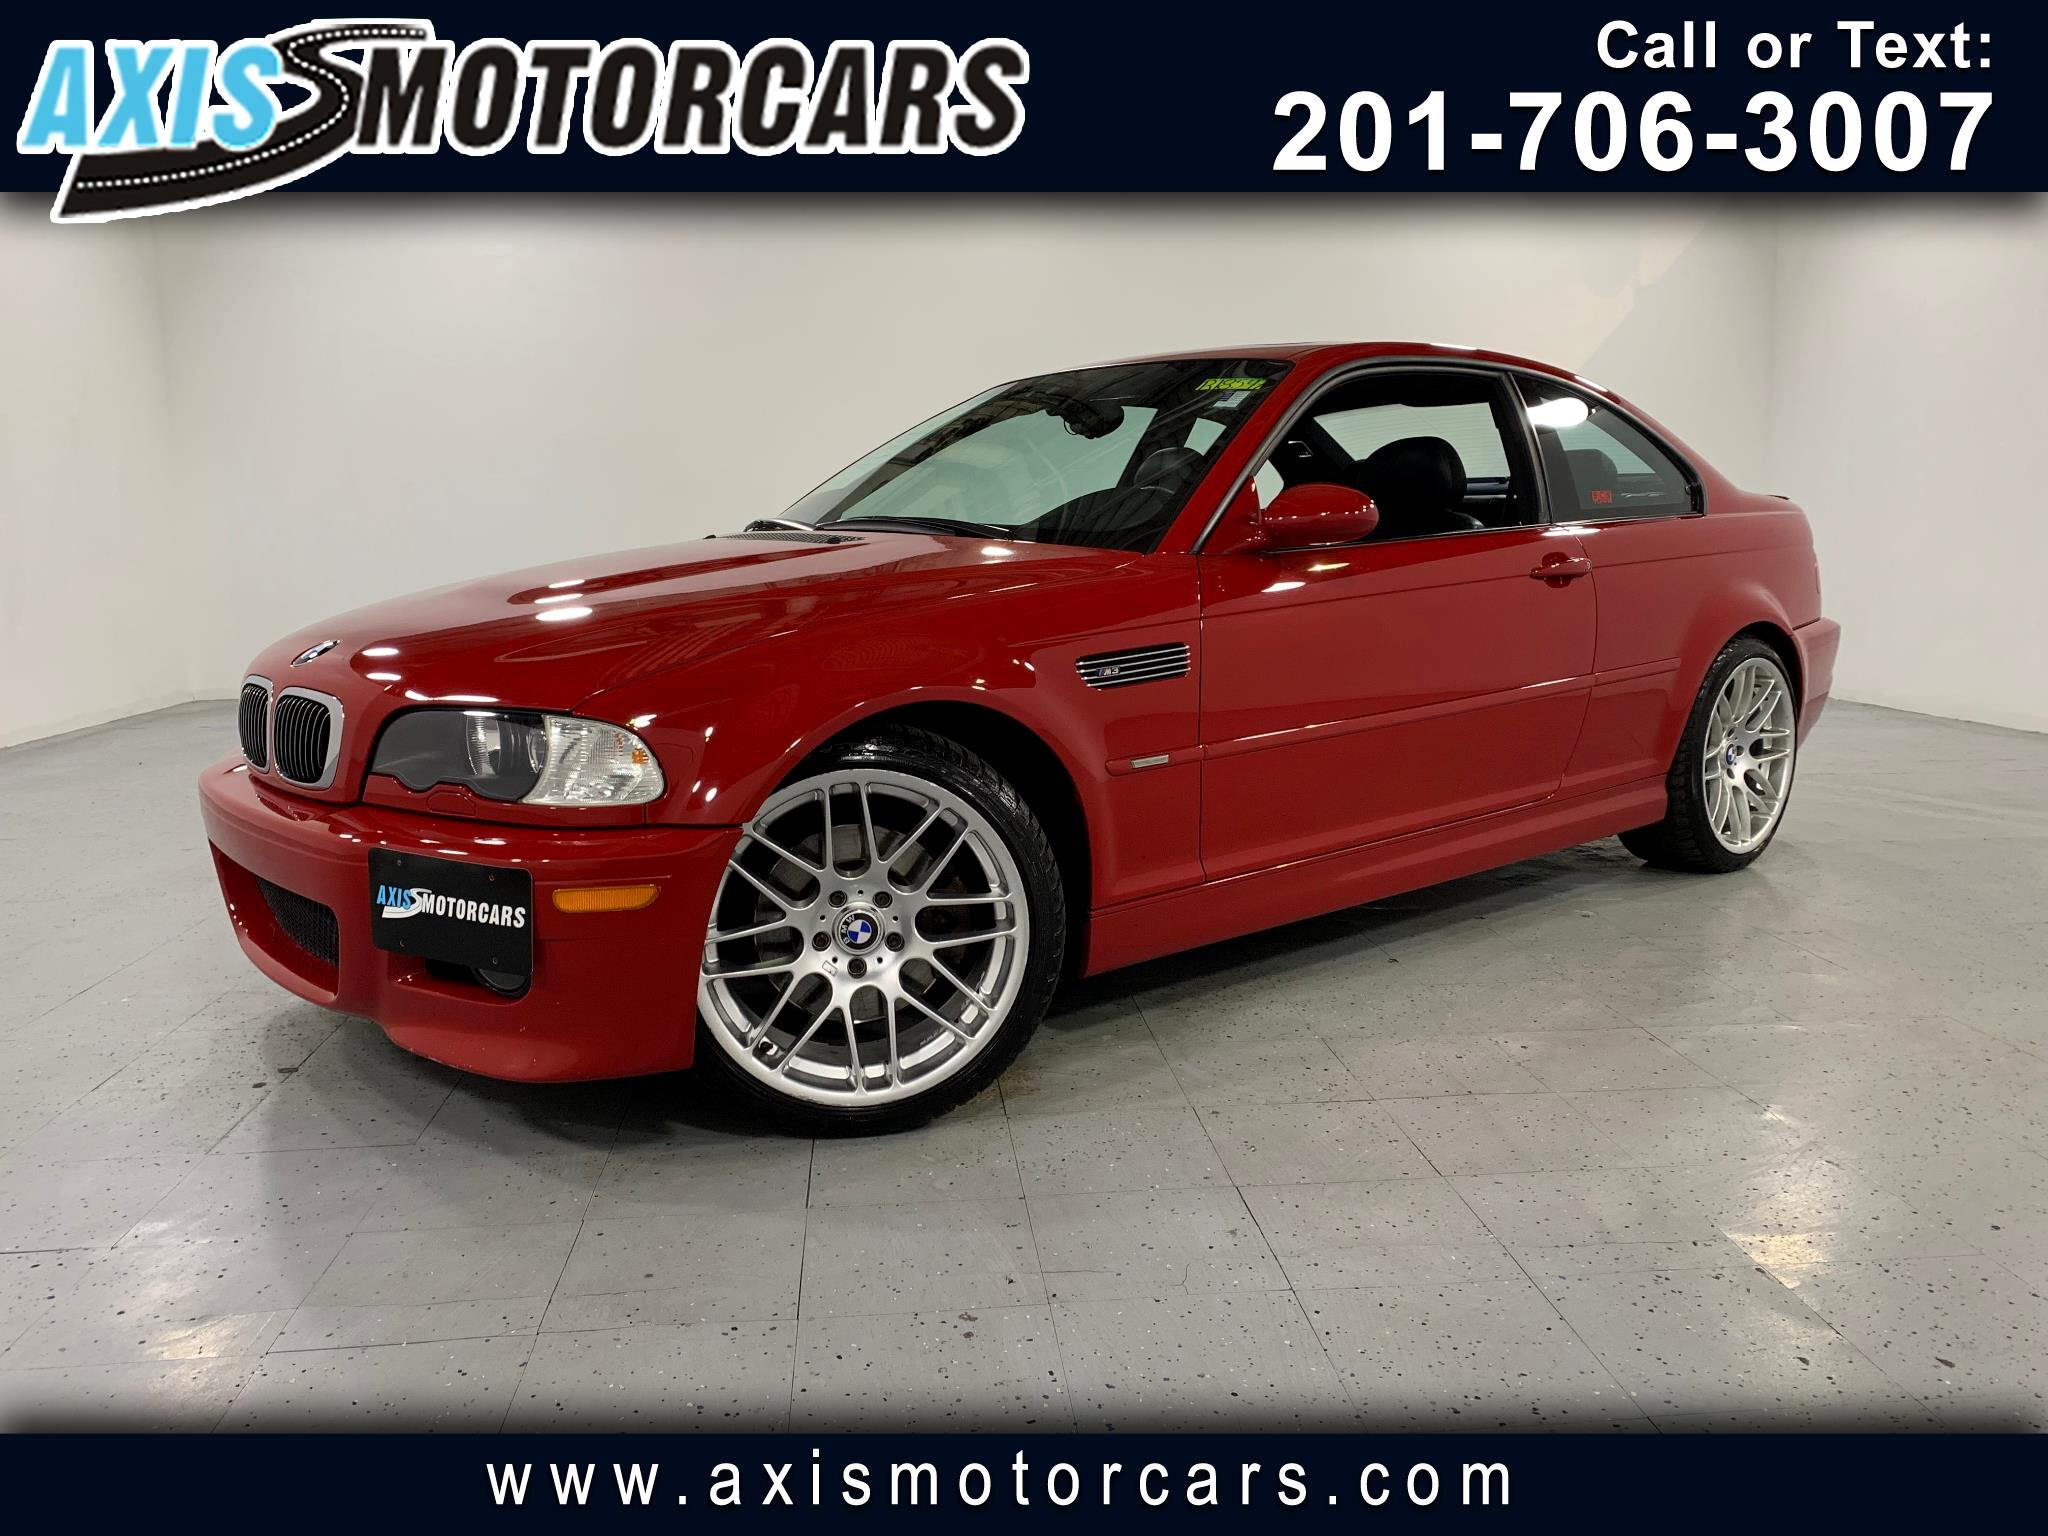 2002 BMW M3 Coupe w/Sunroof Leather